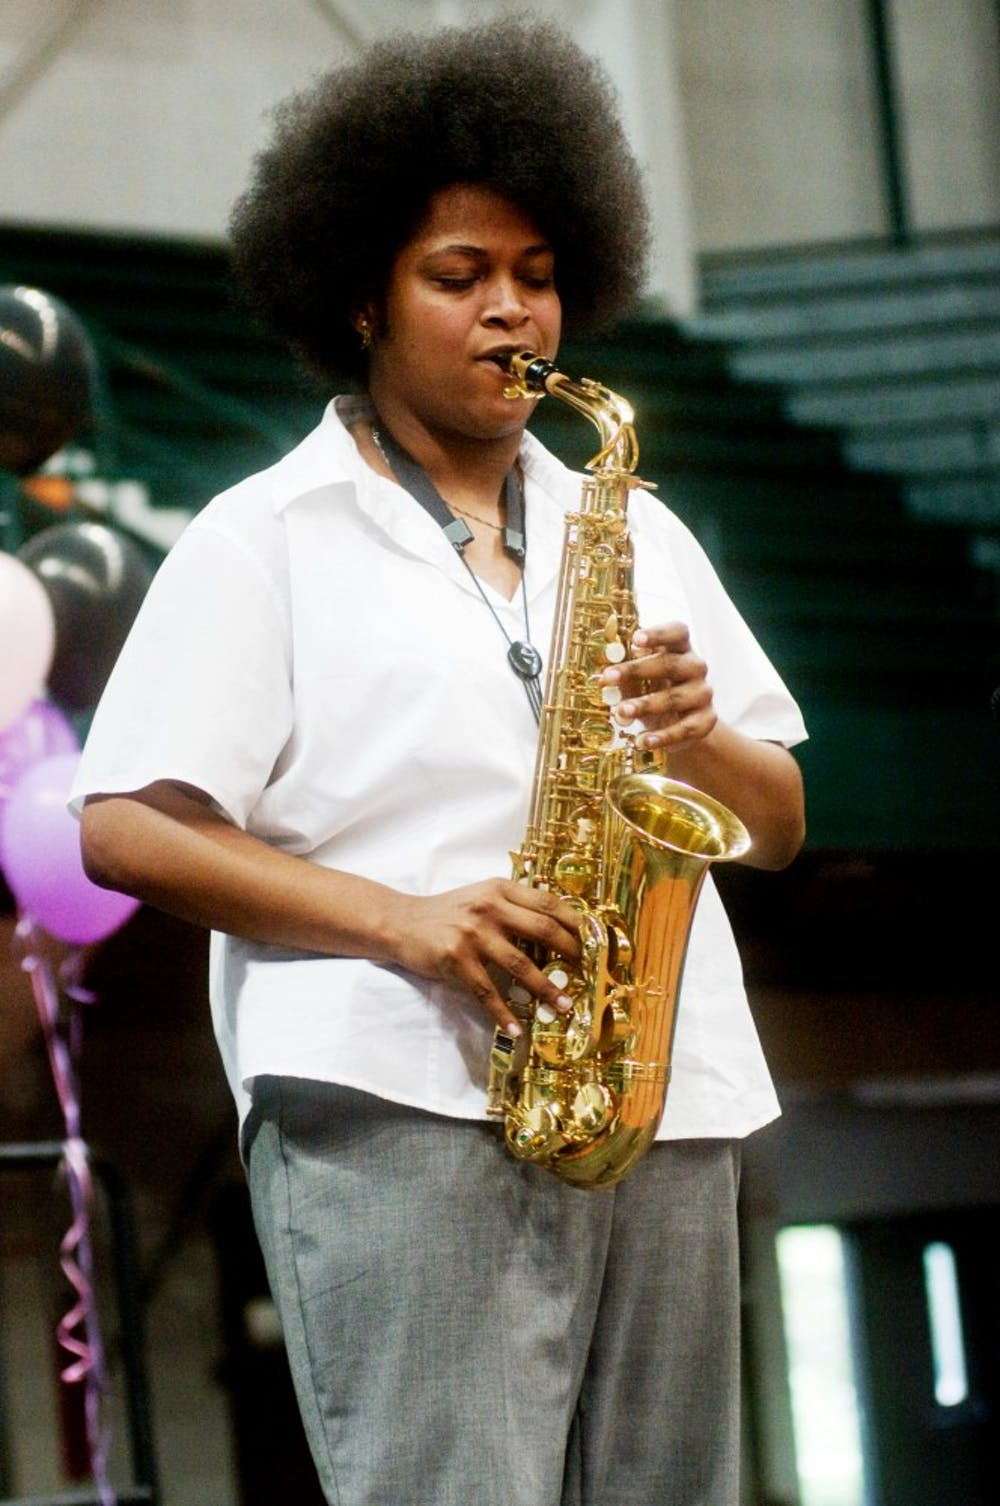 Music education senior Jessica Robins plays the saxophone Saturday evening at Cultural Remix held at Jenison Fieldhouse. Cultural Remix is a cultural celebration which showcases local performers and artists. Samantha Radecki/The State News